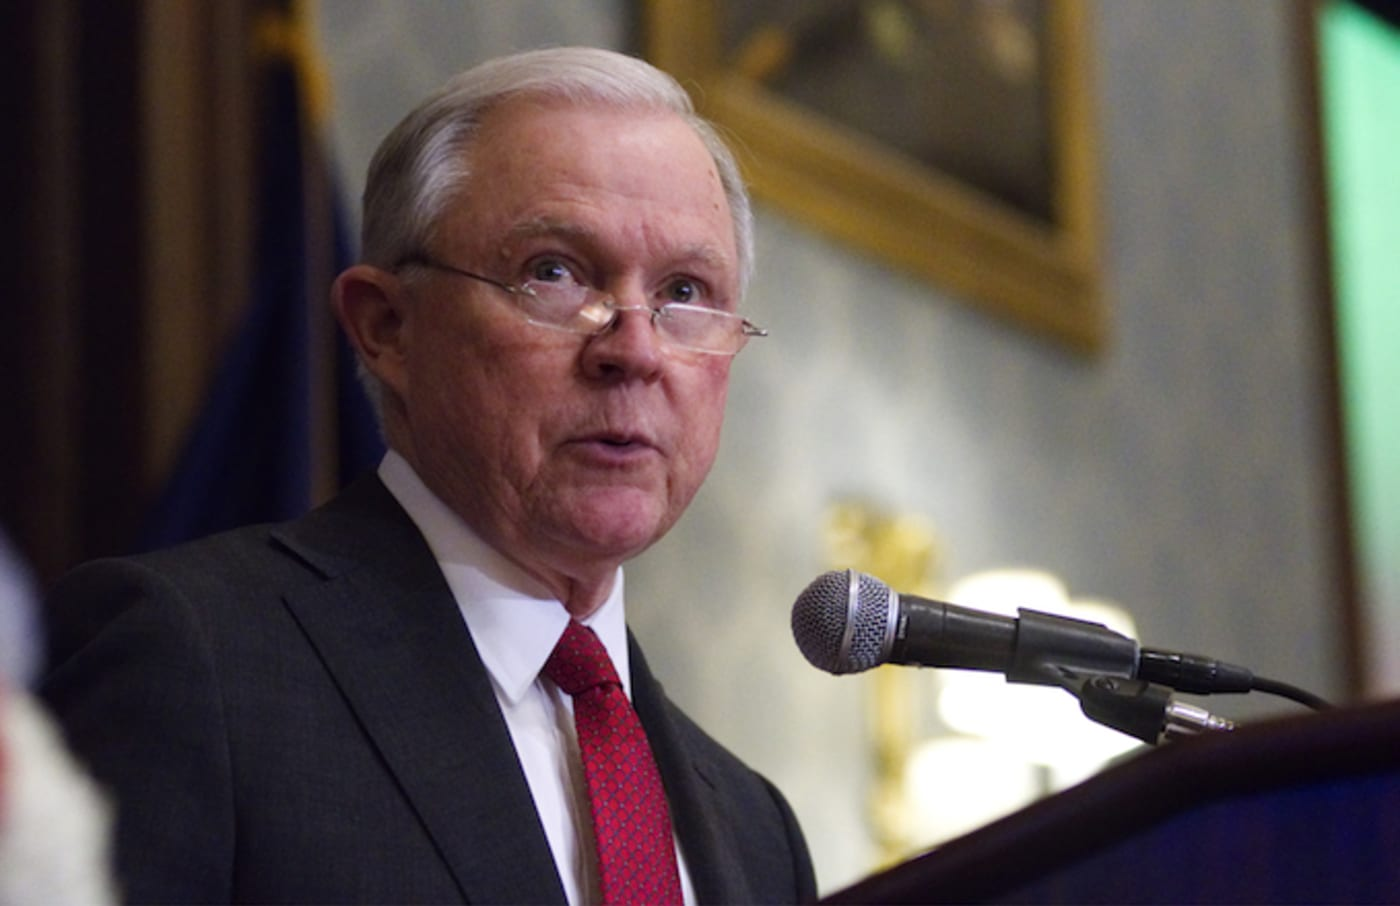 Jeff Sessions delivers remarks in the Lincoln Hall of Union League of Philadelphia.